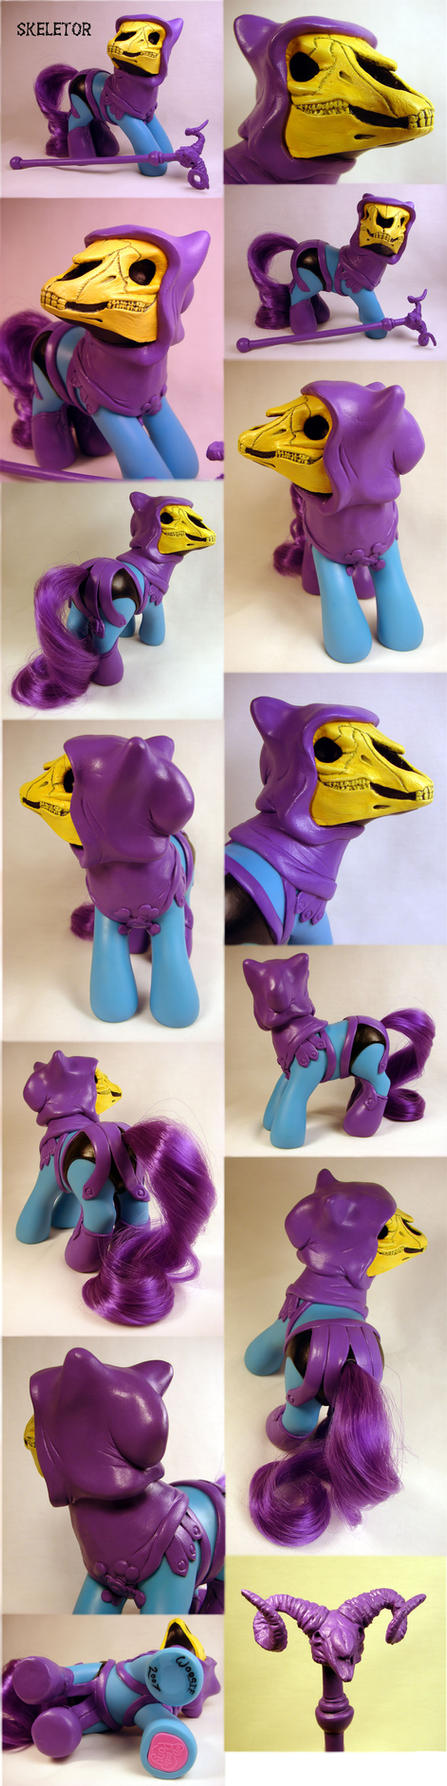 My Little...Skeletor? by Woosie